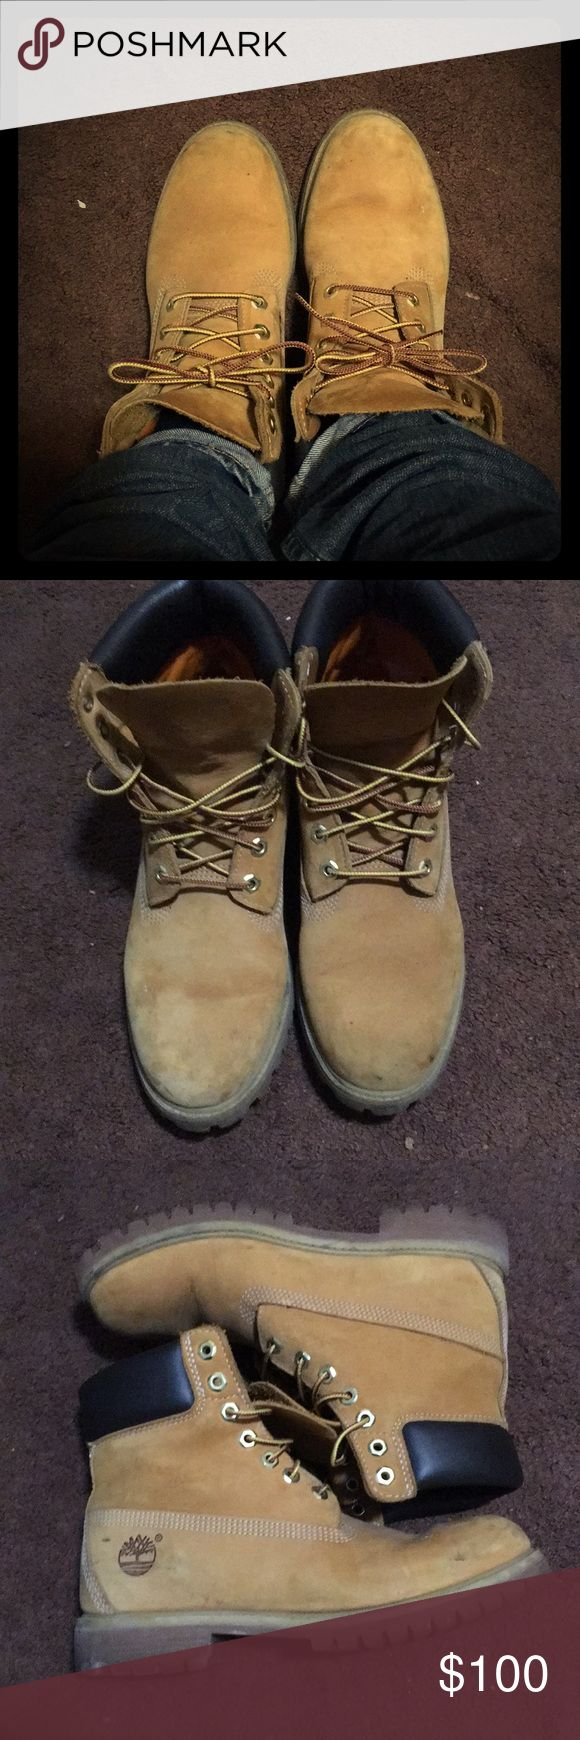 Timberlands men boots. Wheat nubuck. Size US 8 M Timberland 6-inch premium waterproof boots Style: 100613240 Color way: wheat nubuck Size: US 8 Men's , EUR 41 Minor scuffs, but easily cleanable with the timberland boot care cleaner. Timberland Shoes Boots